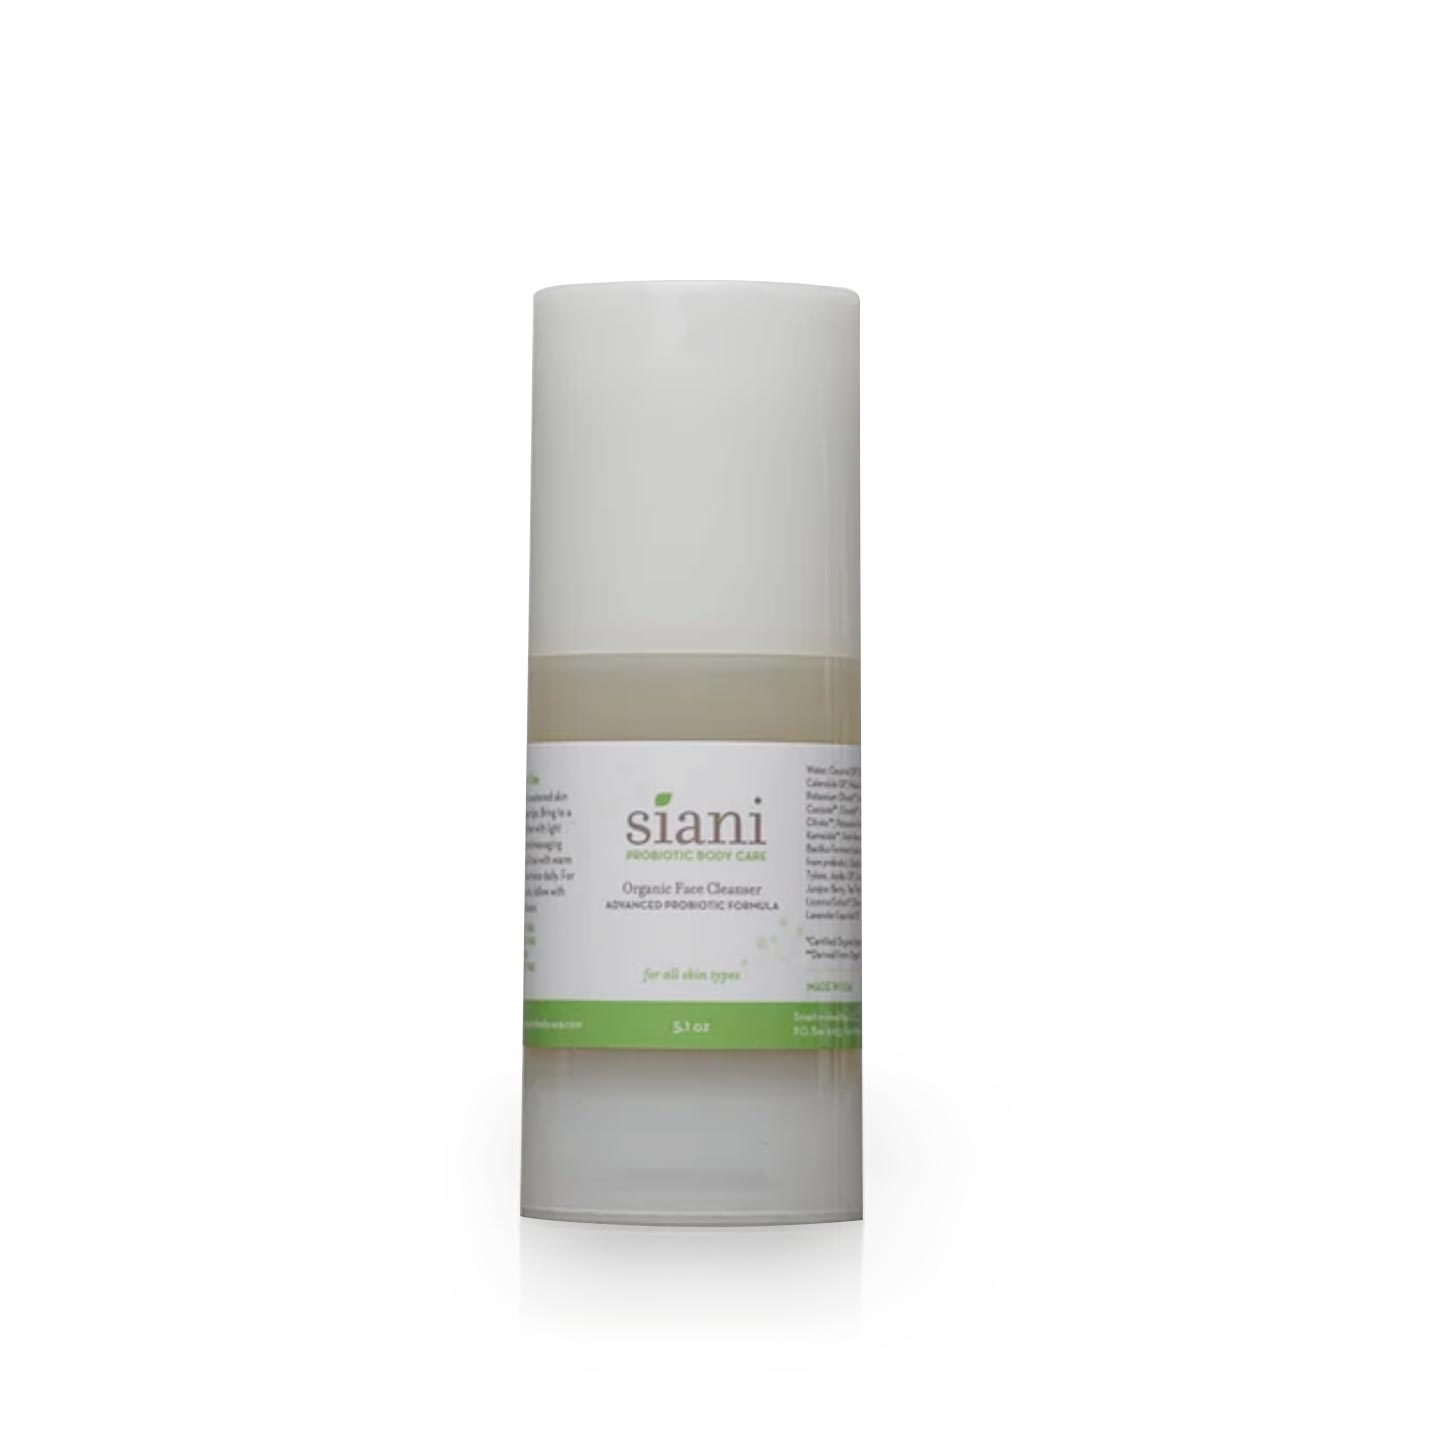 Natural Probiotic Face Cleanser Probiotics | Siani Probiotic Body Care